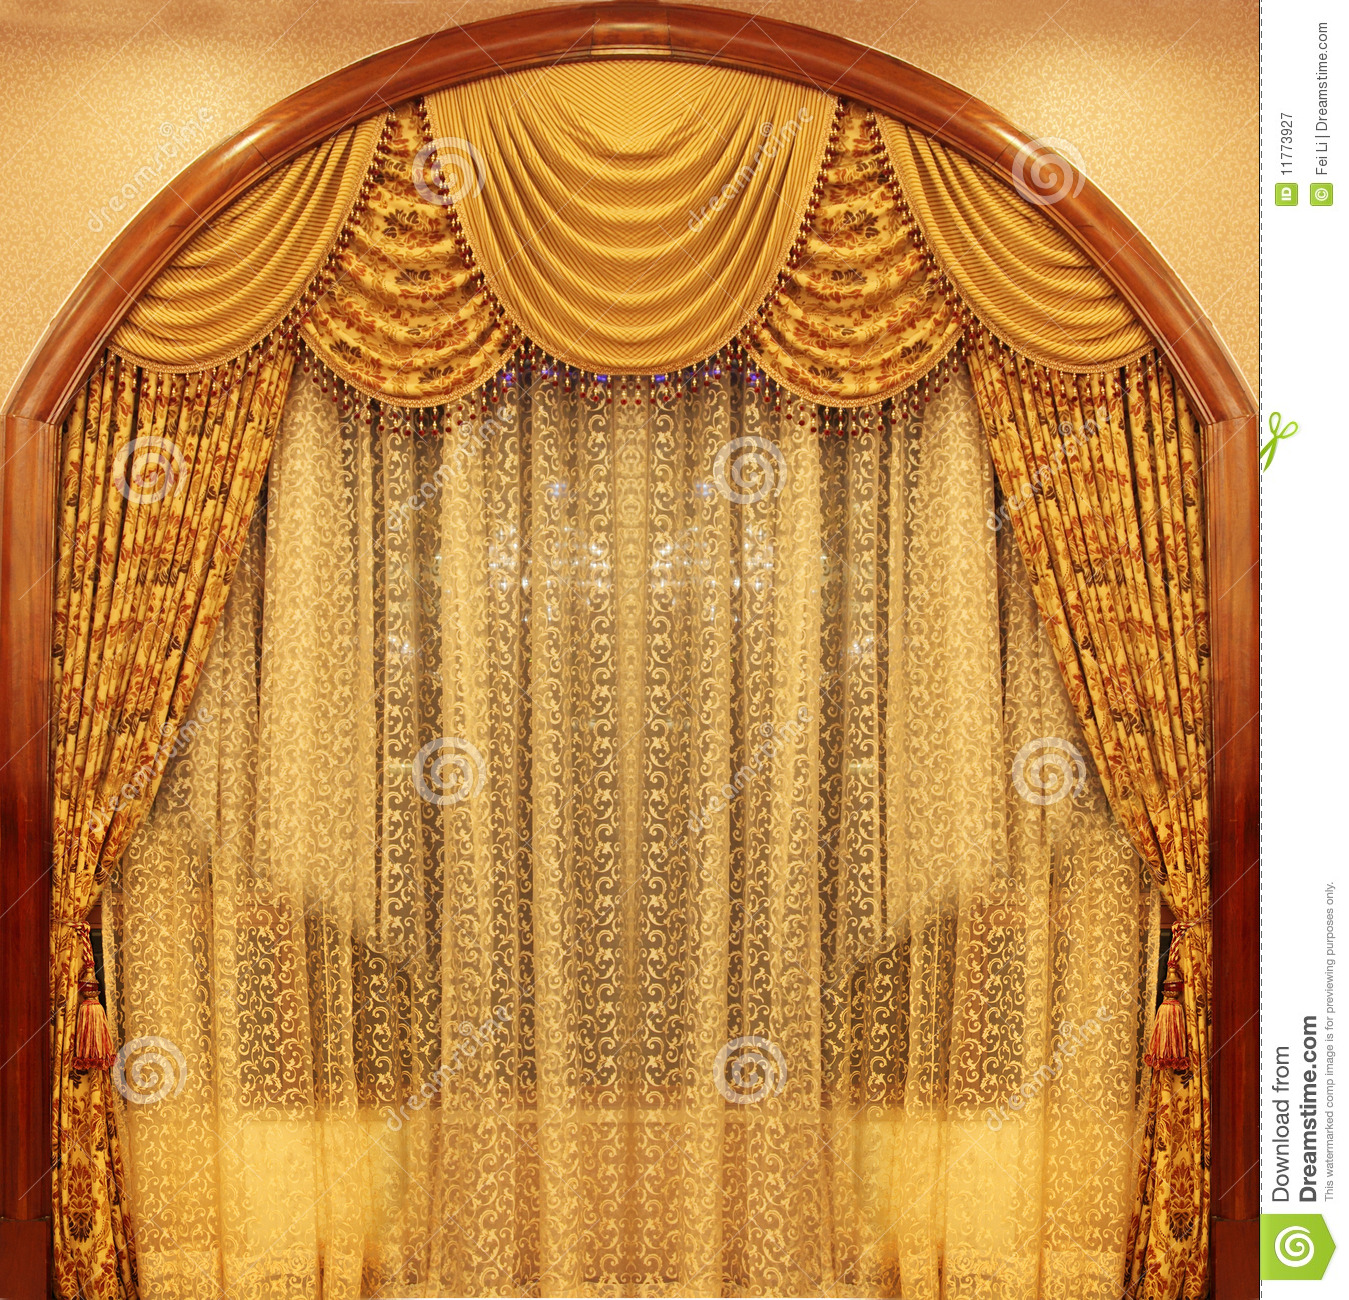 Yellow Velvet Theater Curtains Stock Image